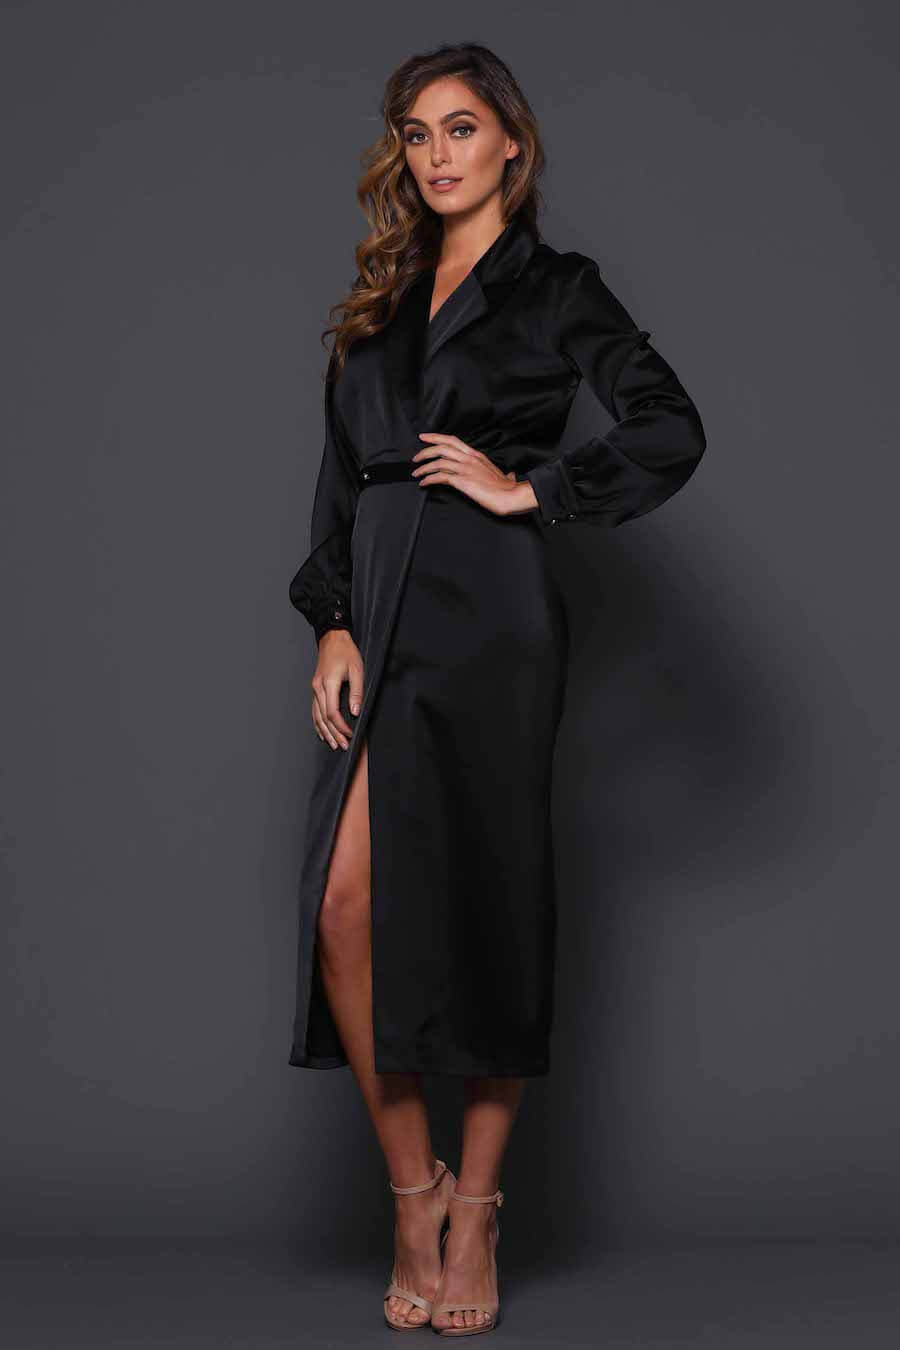 Black wrap dress with double breasted buttons on waist